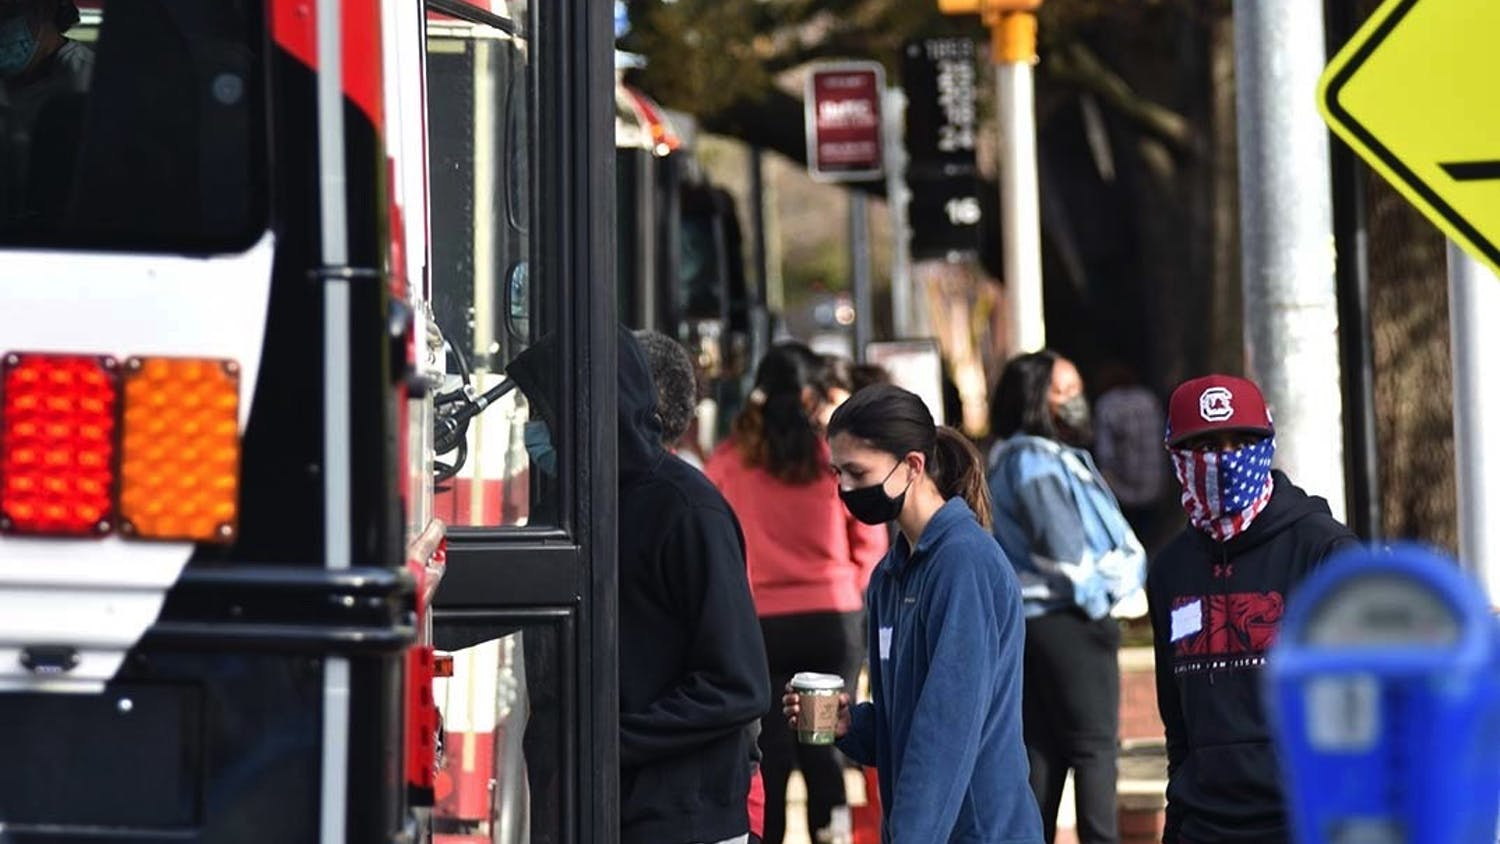 A Central Midlands Regional Transit Authority (COMET) shuttle parked at one of the designated stops around campus as students board the bus. A new rule requires students to swipe their CarolinaCard to board the University of South Carolina affiliated shuttles.